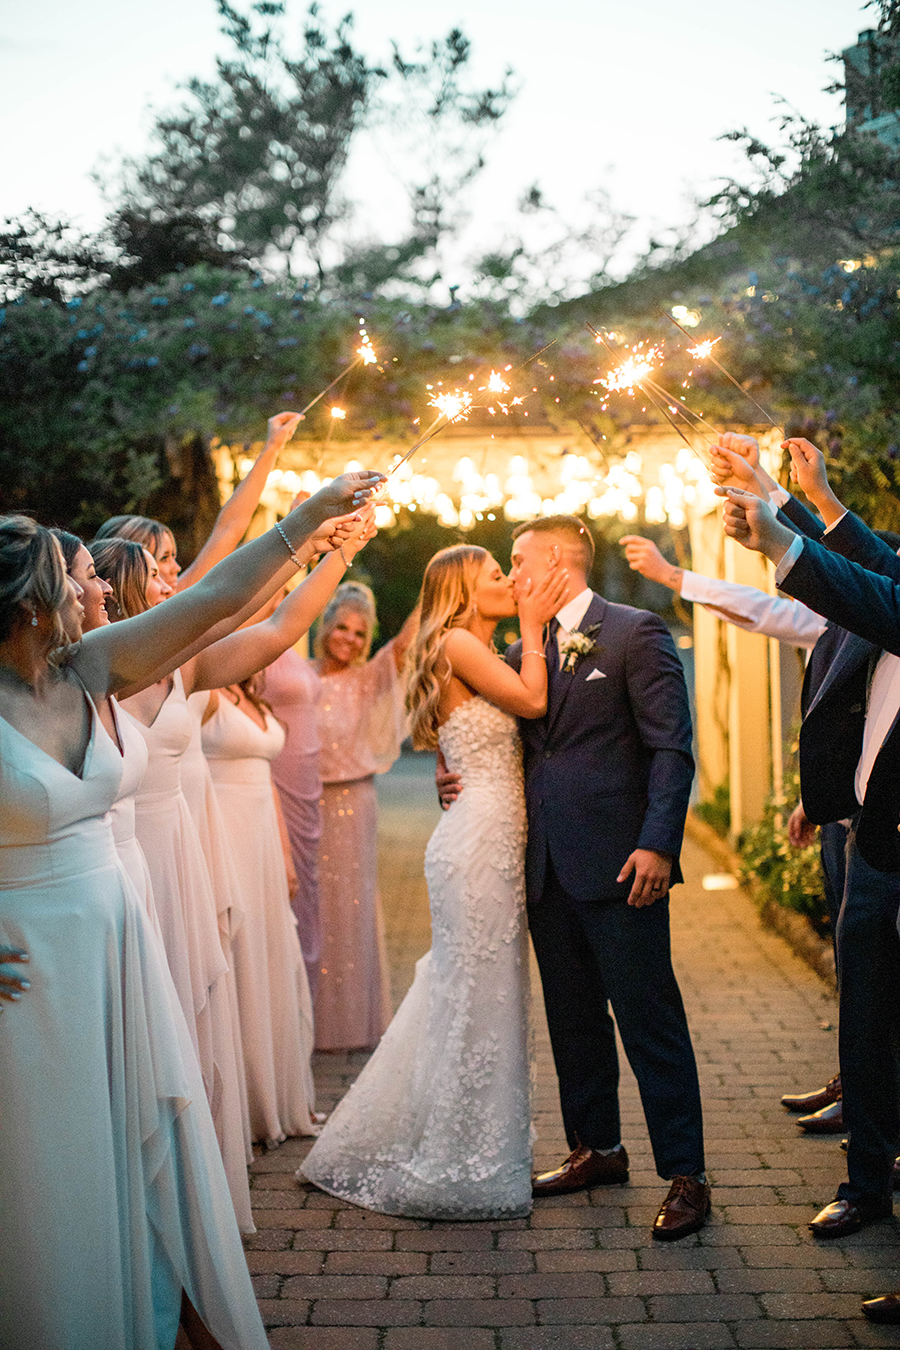 Wedding night sparkler send off pictures with the bridal party